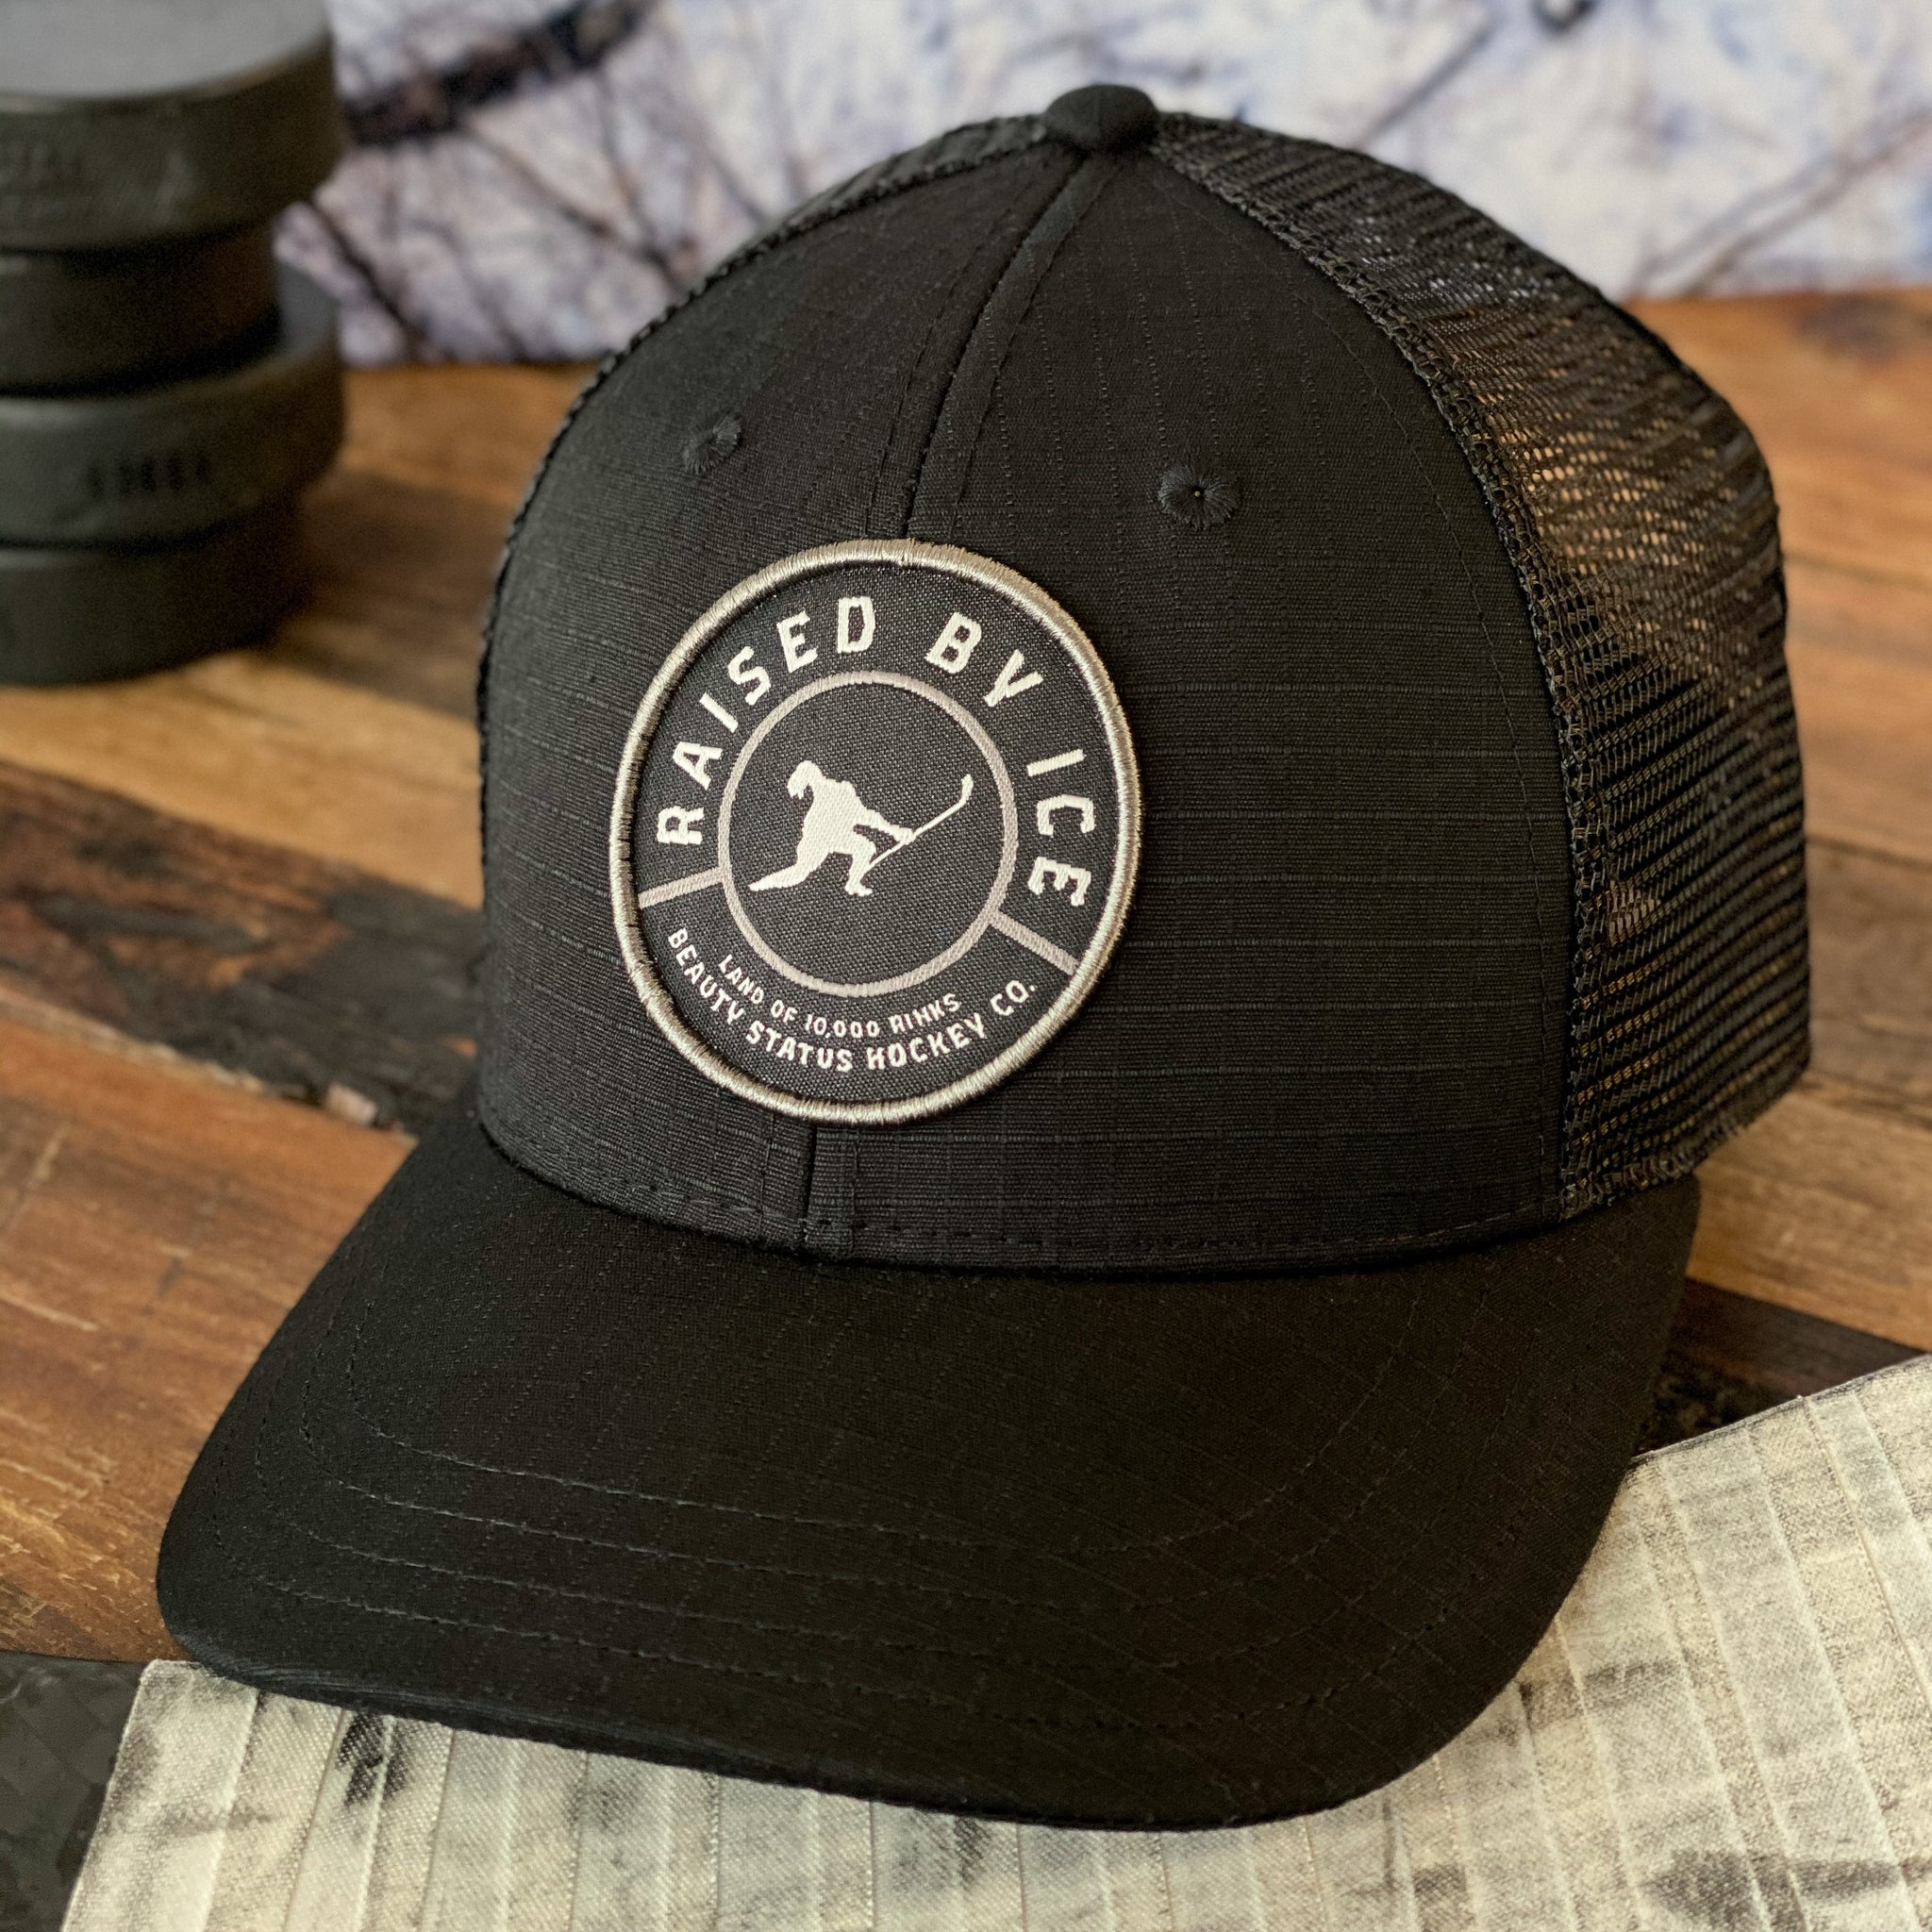 Homage (Black/Skate Blade Steel/Charcoal) - Beauty Status Hockey Co.